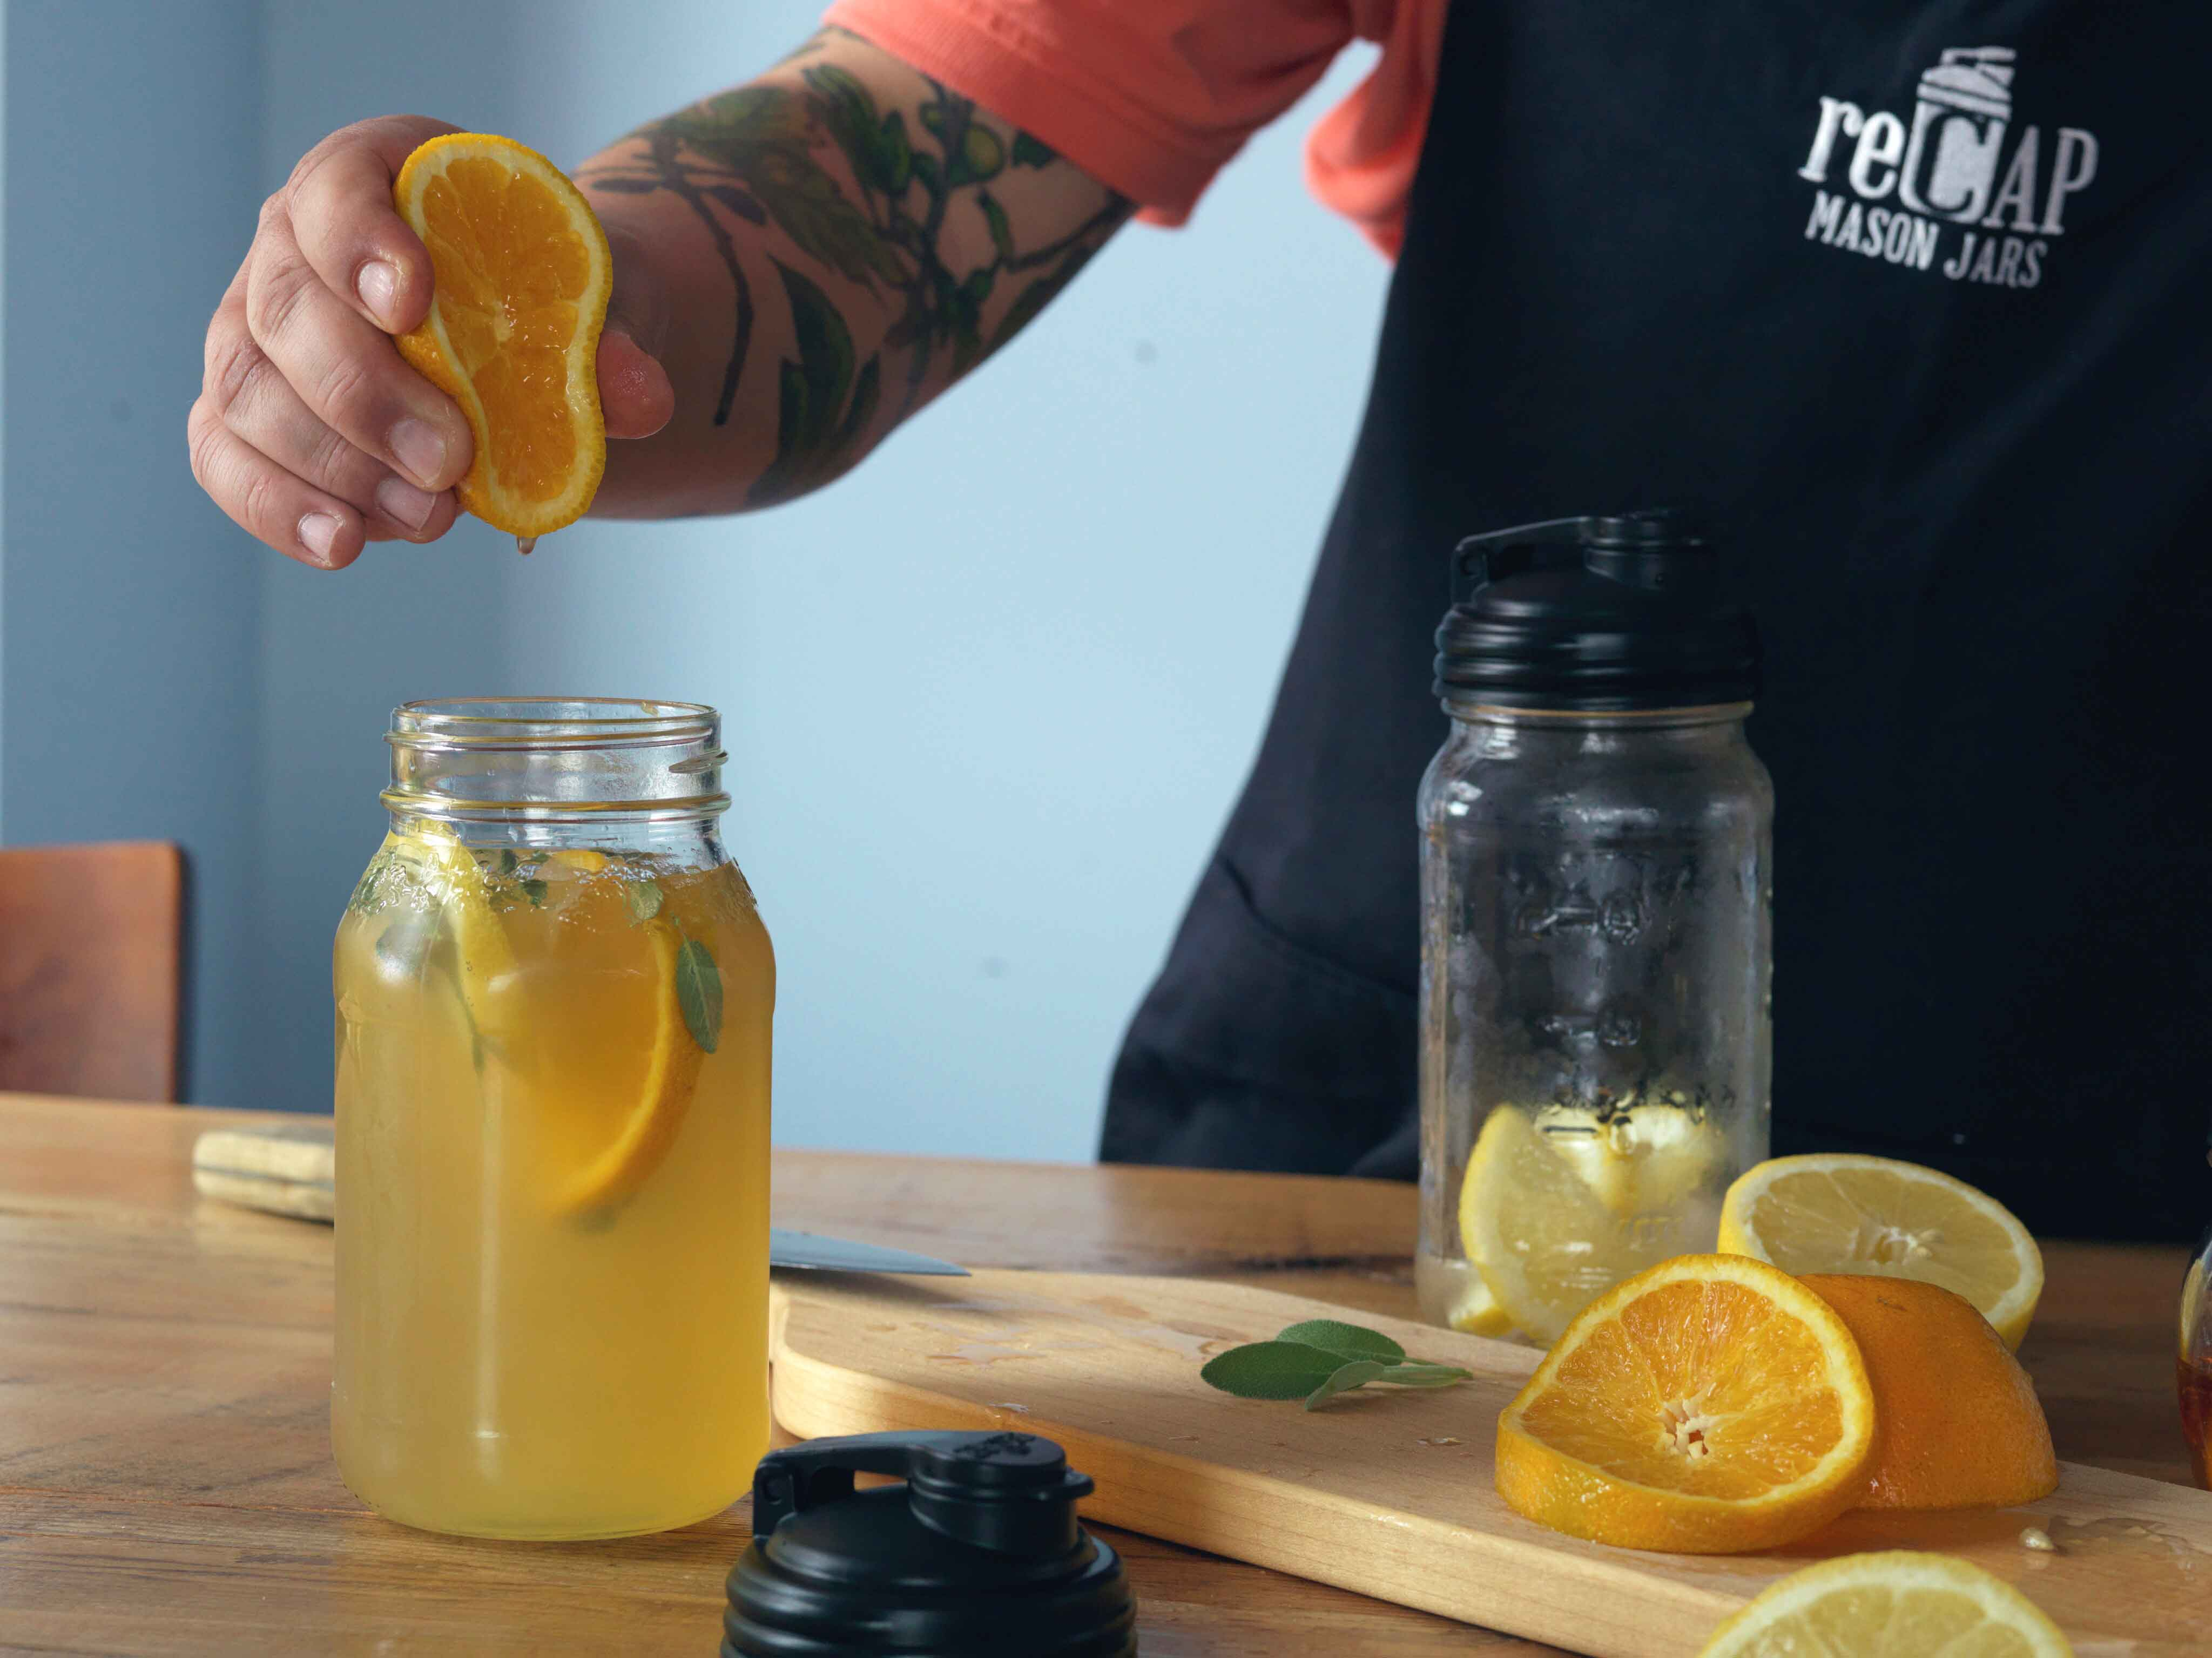 Squeezing Orange Juice into Jar